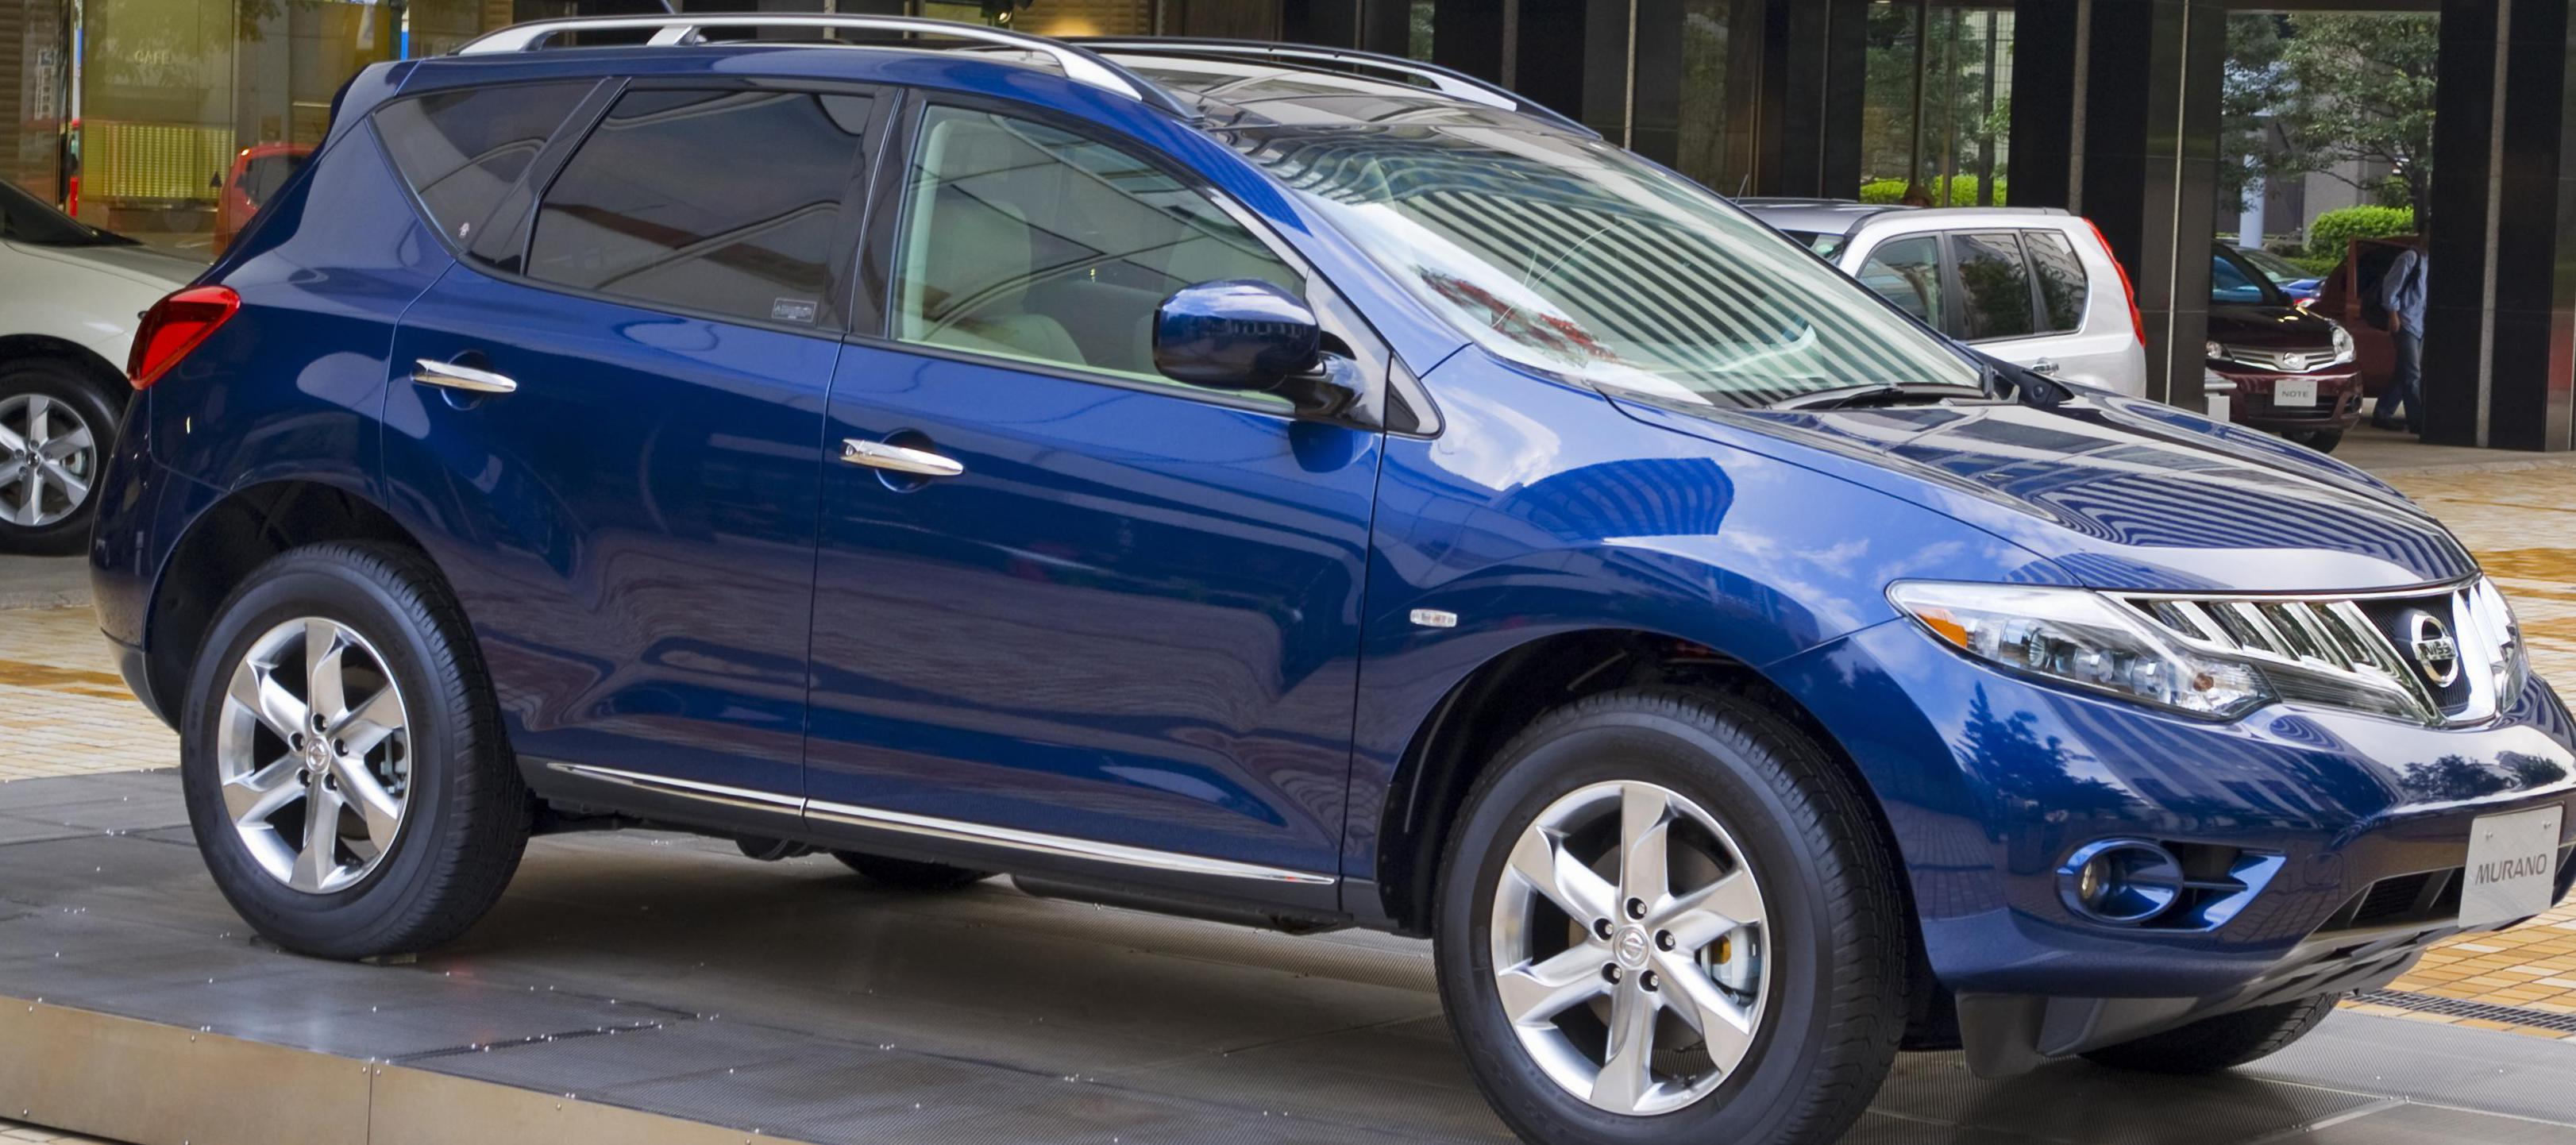 Nissan Murano approved 2010